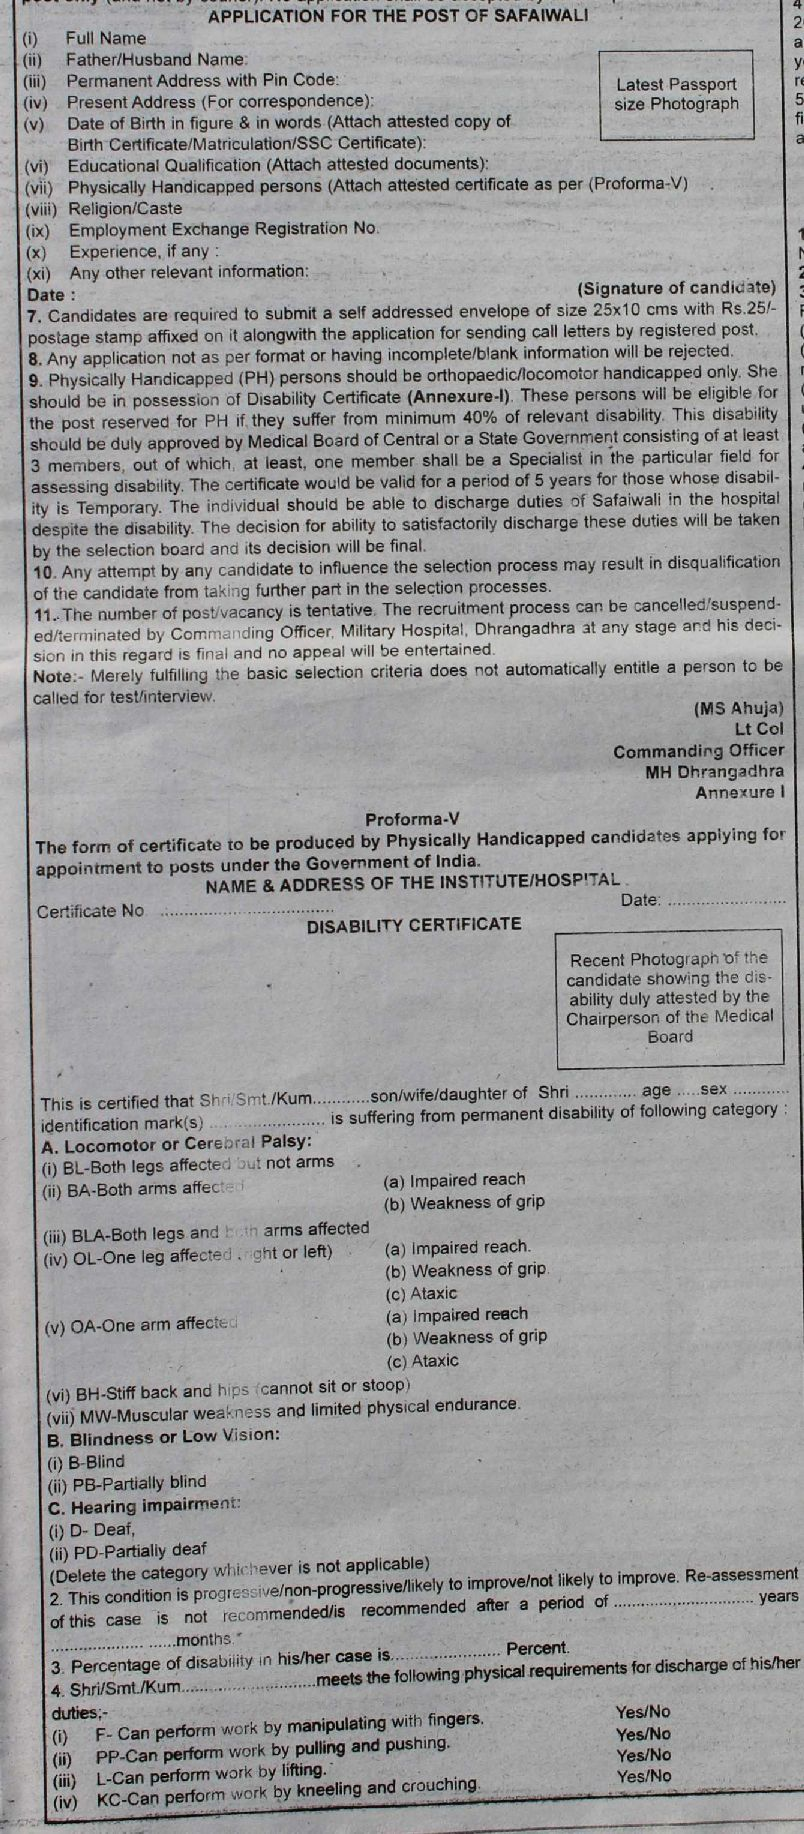 Ministry of Defence Military Hospital, Dhrangadhra jobs